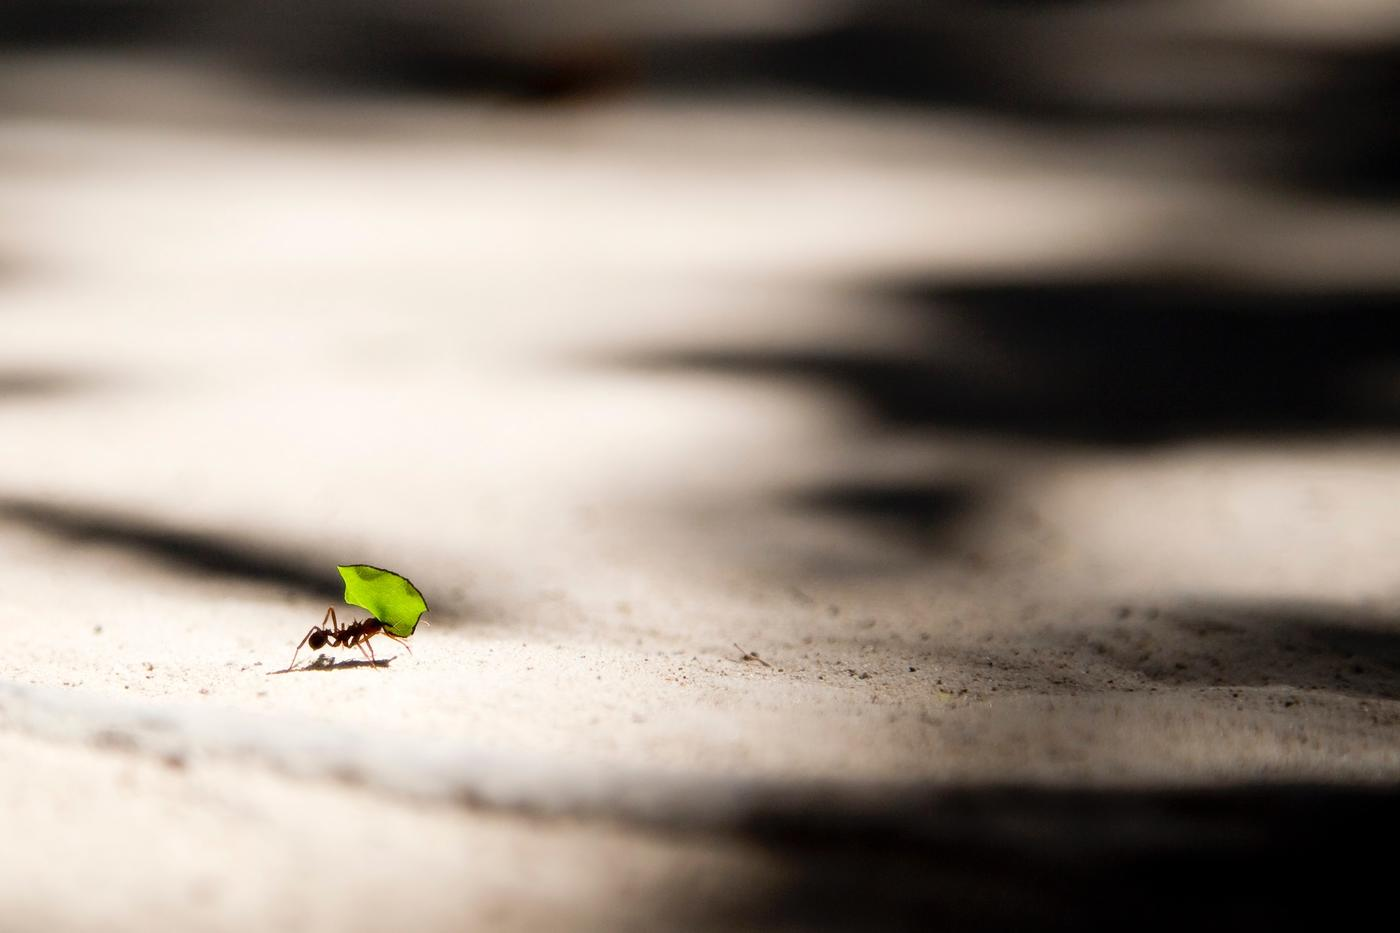 ant carrying leaf across the ground